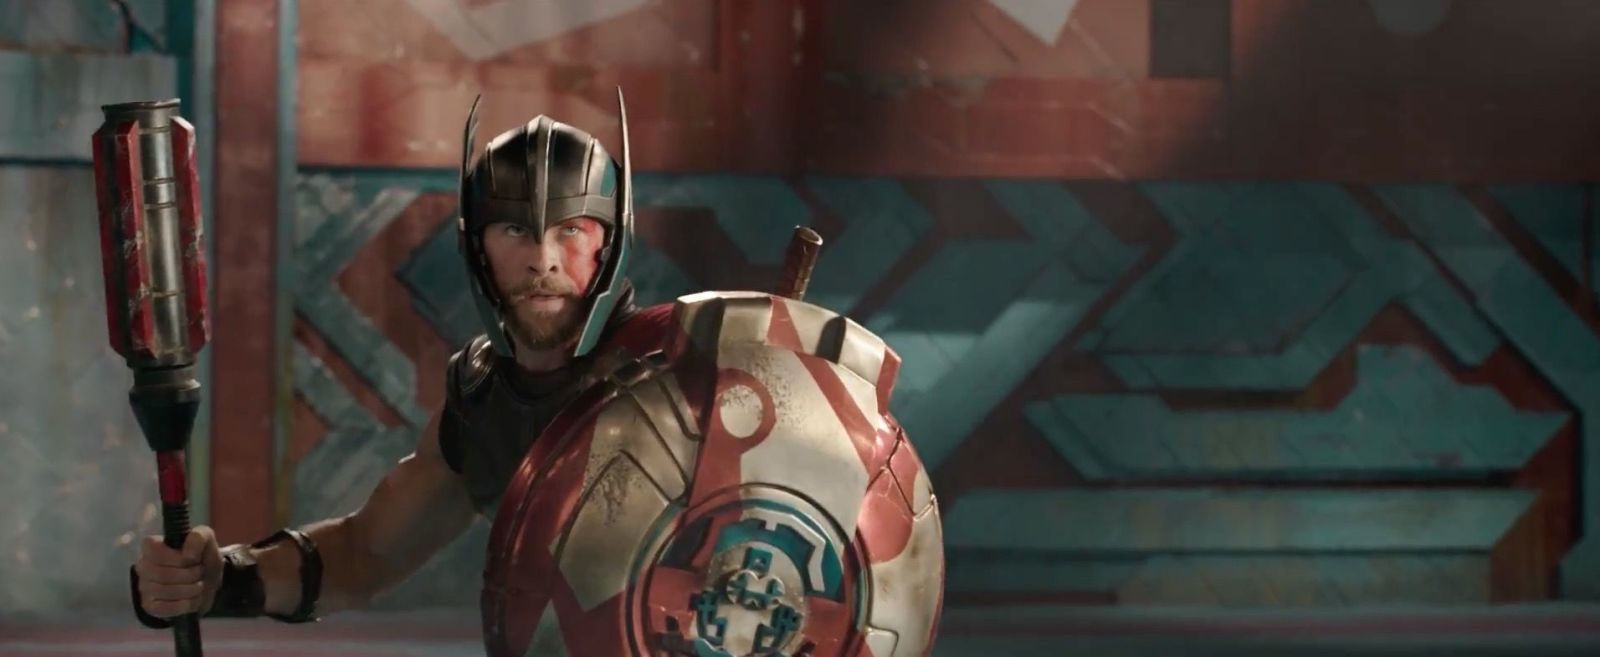 thor ragnarok plot cast release date spoilers and everything thor ragnarok plot cast release date spoilers and everything you need to know